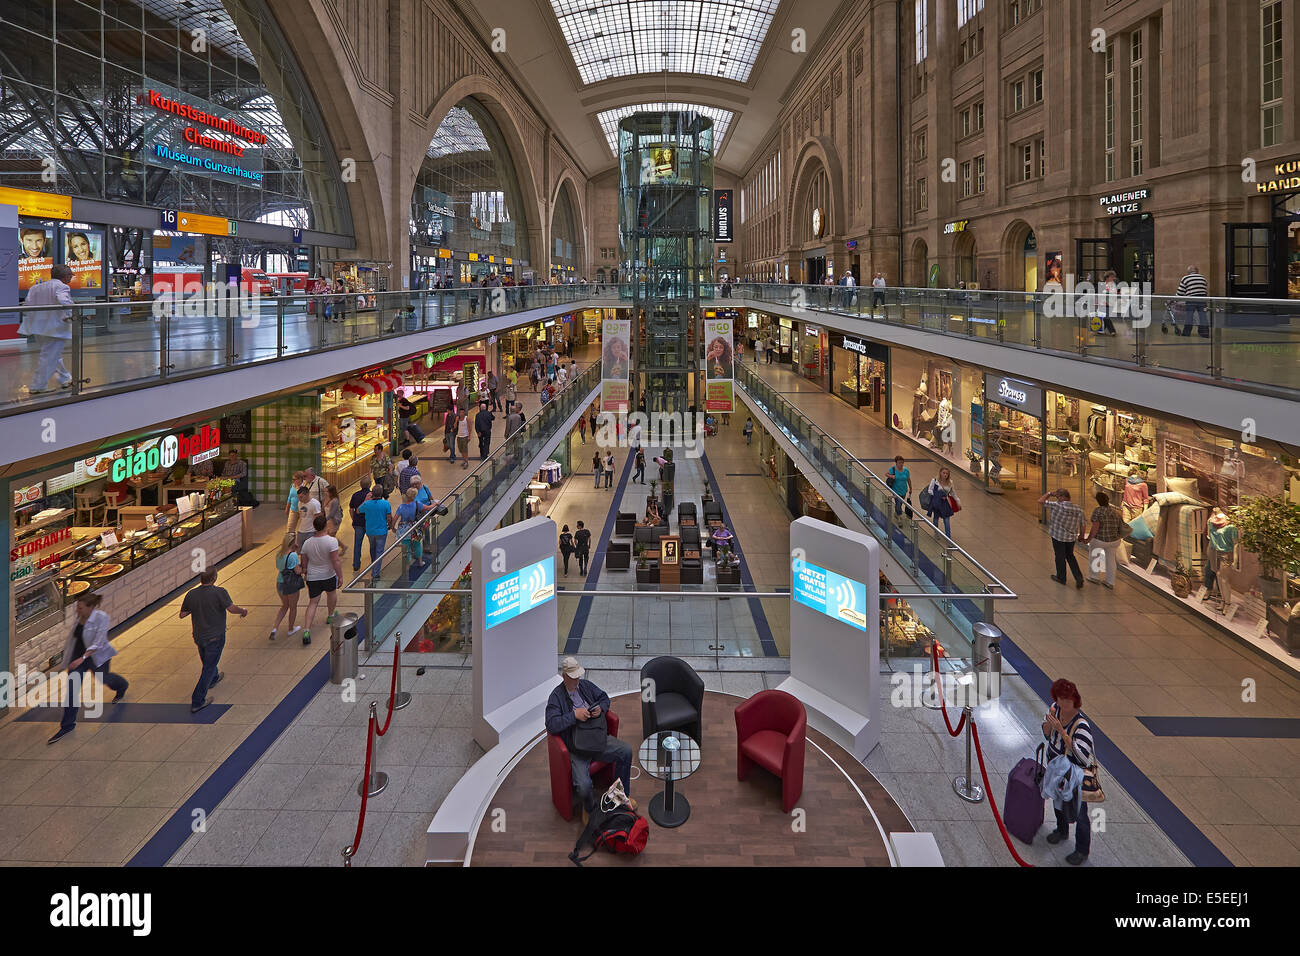 Promenades in Leipzig Central Station, Germany - Stock Image